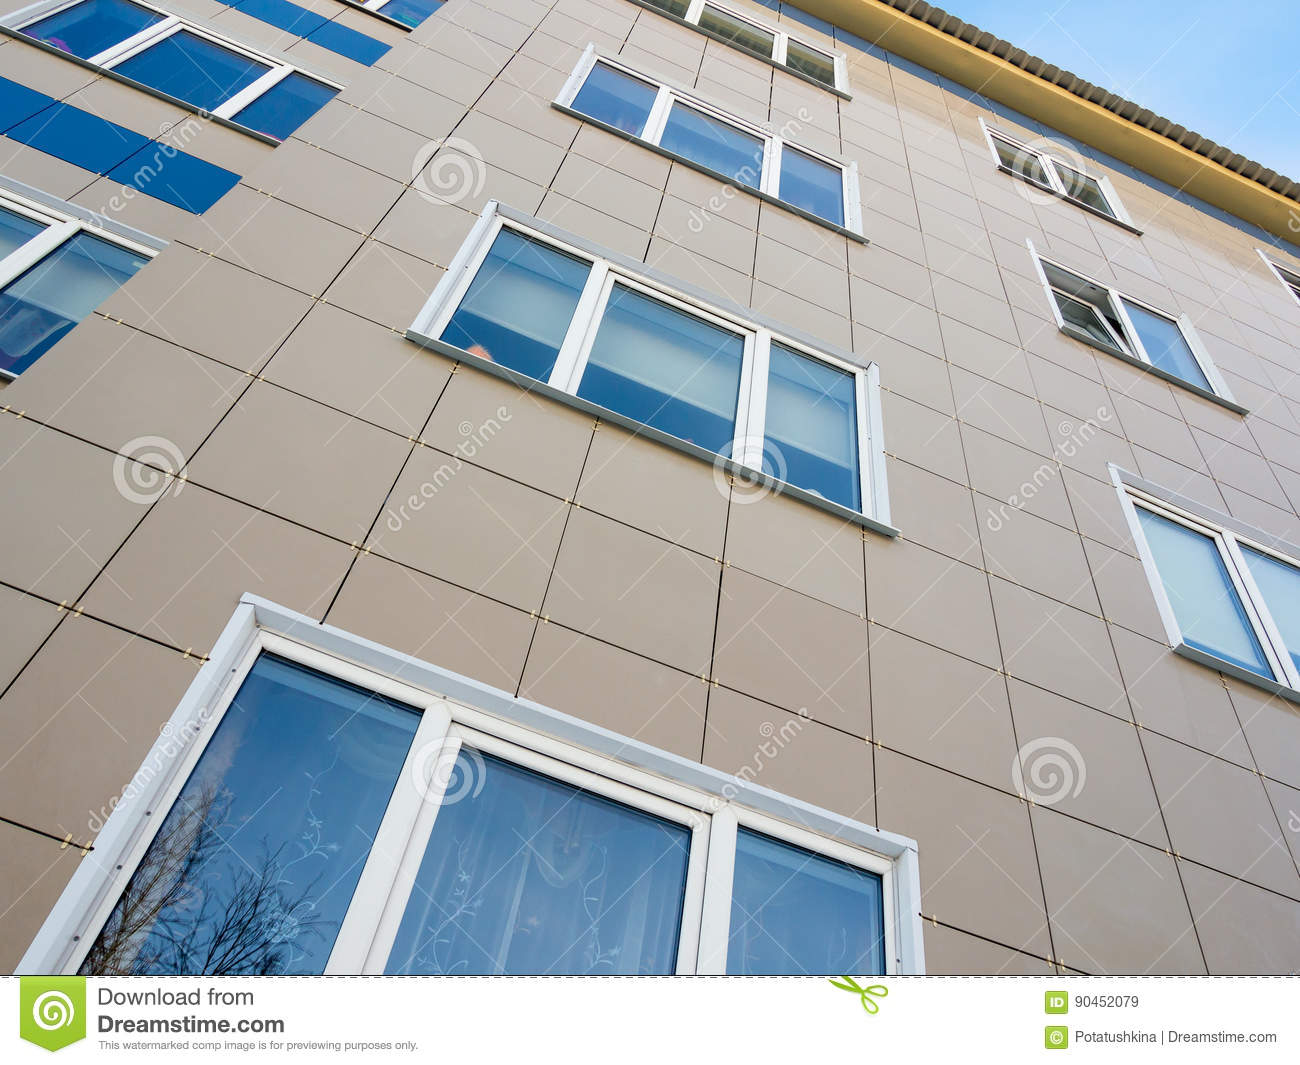 The Use Of Ceramic Tiles In The Decoration Of The Facade Of The